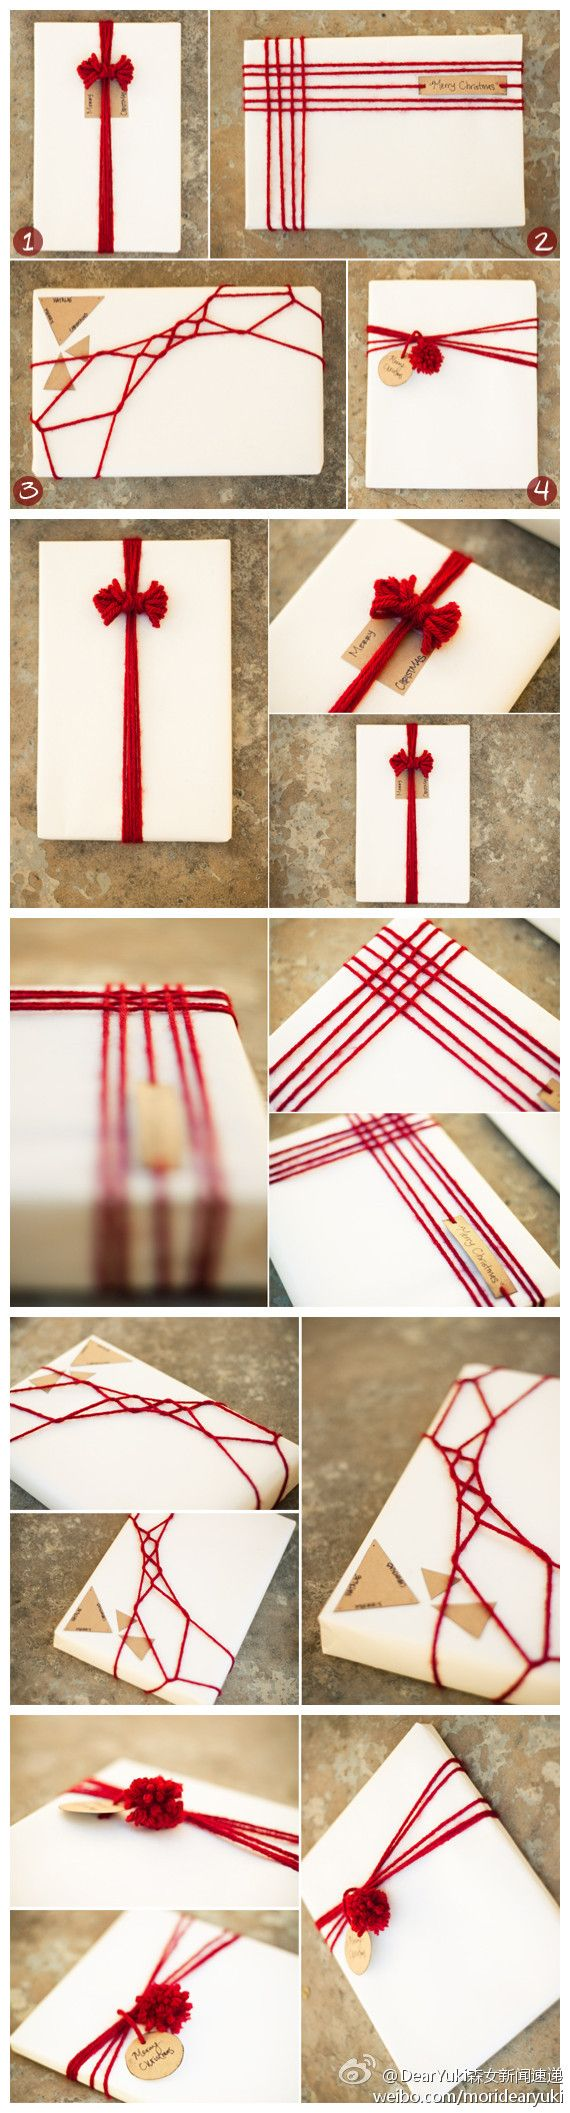 Fun wrapping ideas